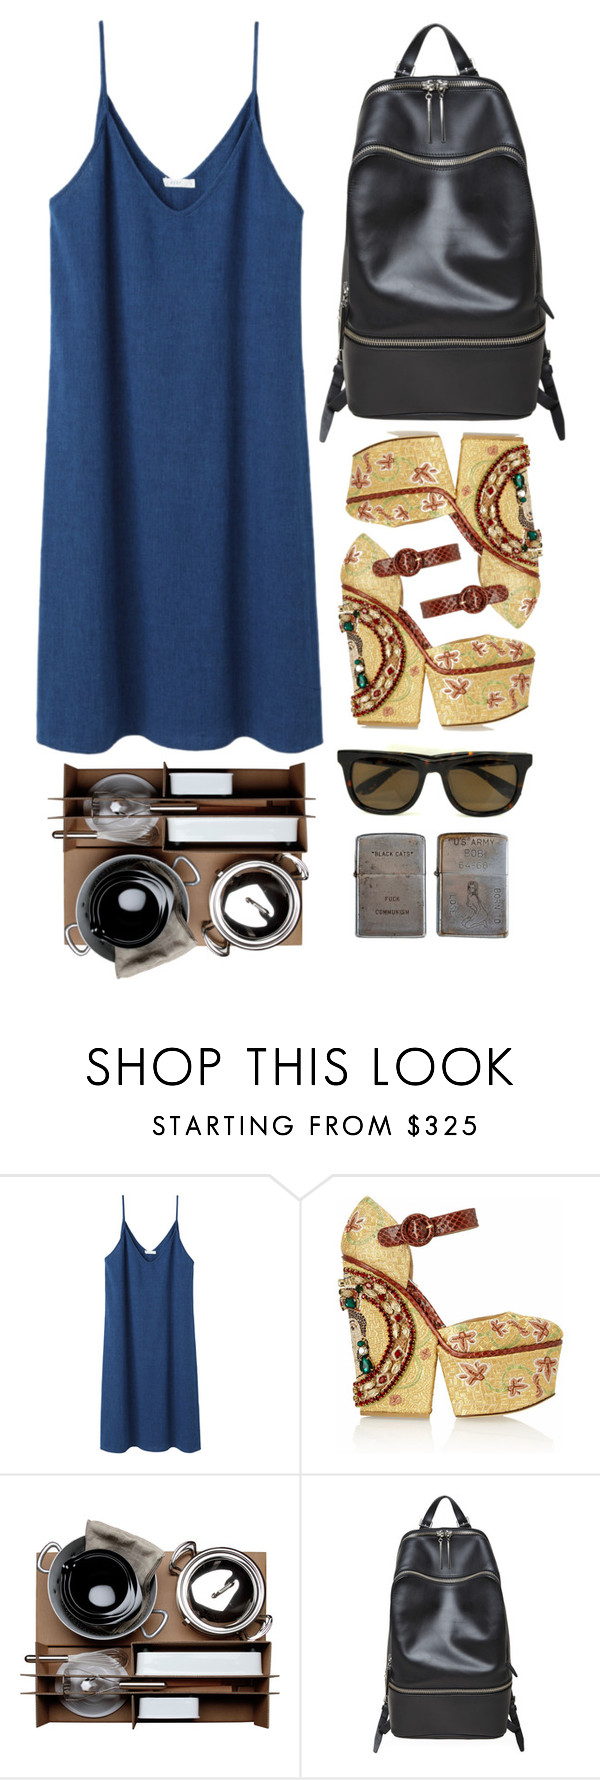 """Untitled #543"" by laughtersassassin ❤ liked on Polyvore featuring 6397, Dolce&Gabbana, Malle W. Trousseau, 3.1 Phillip Lim, Zippo, women's clothing, women, female, woman and misses"